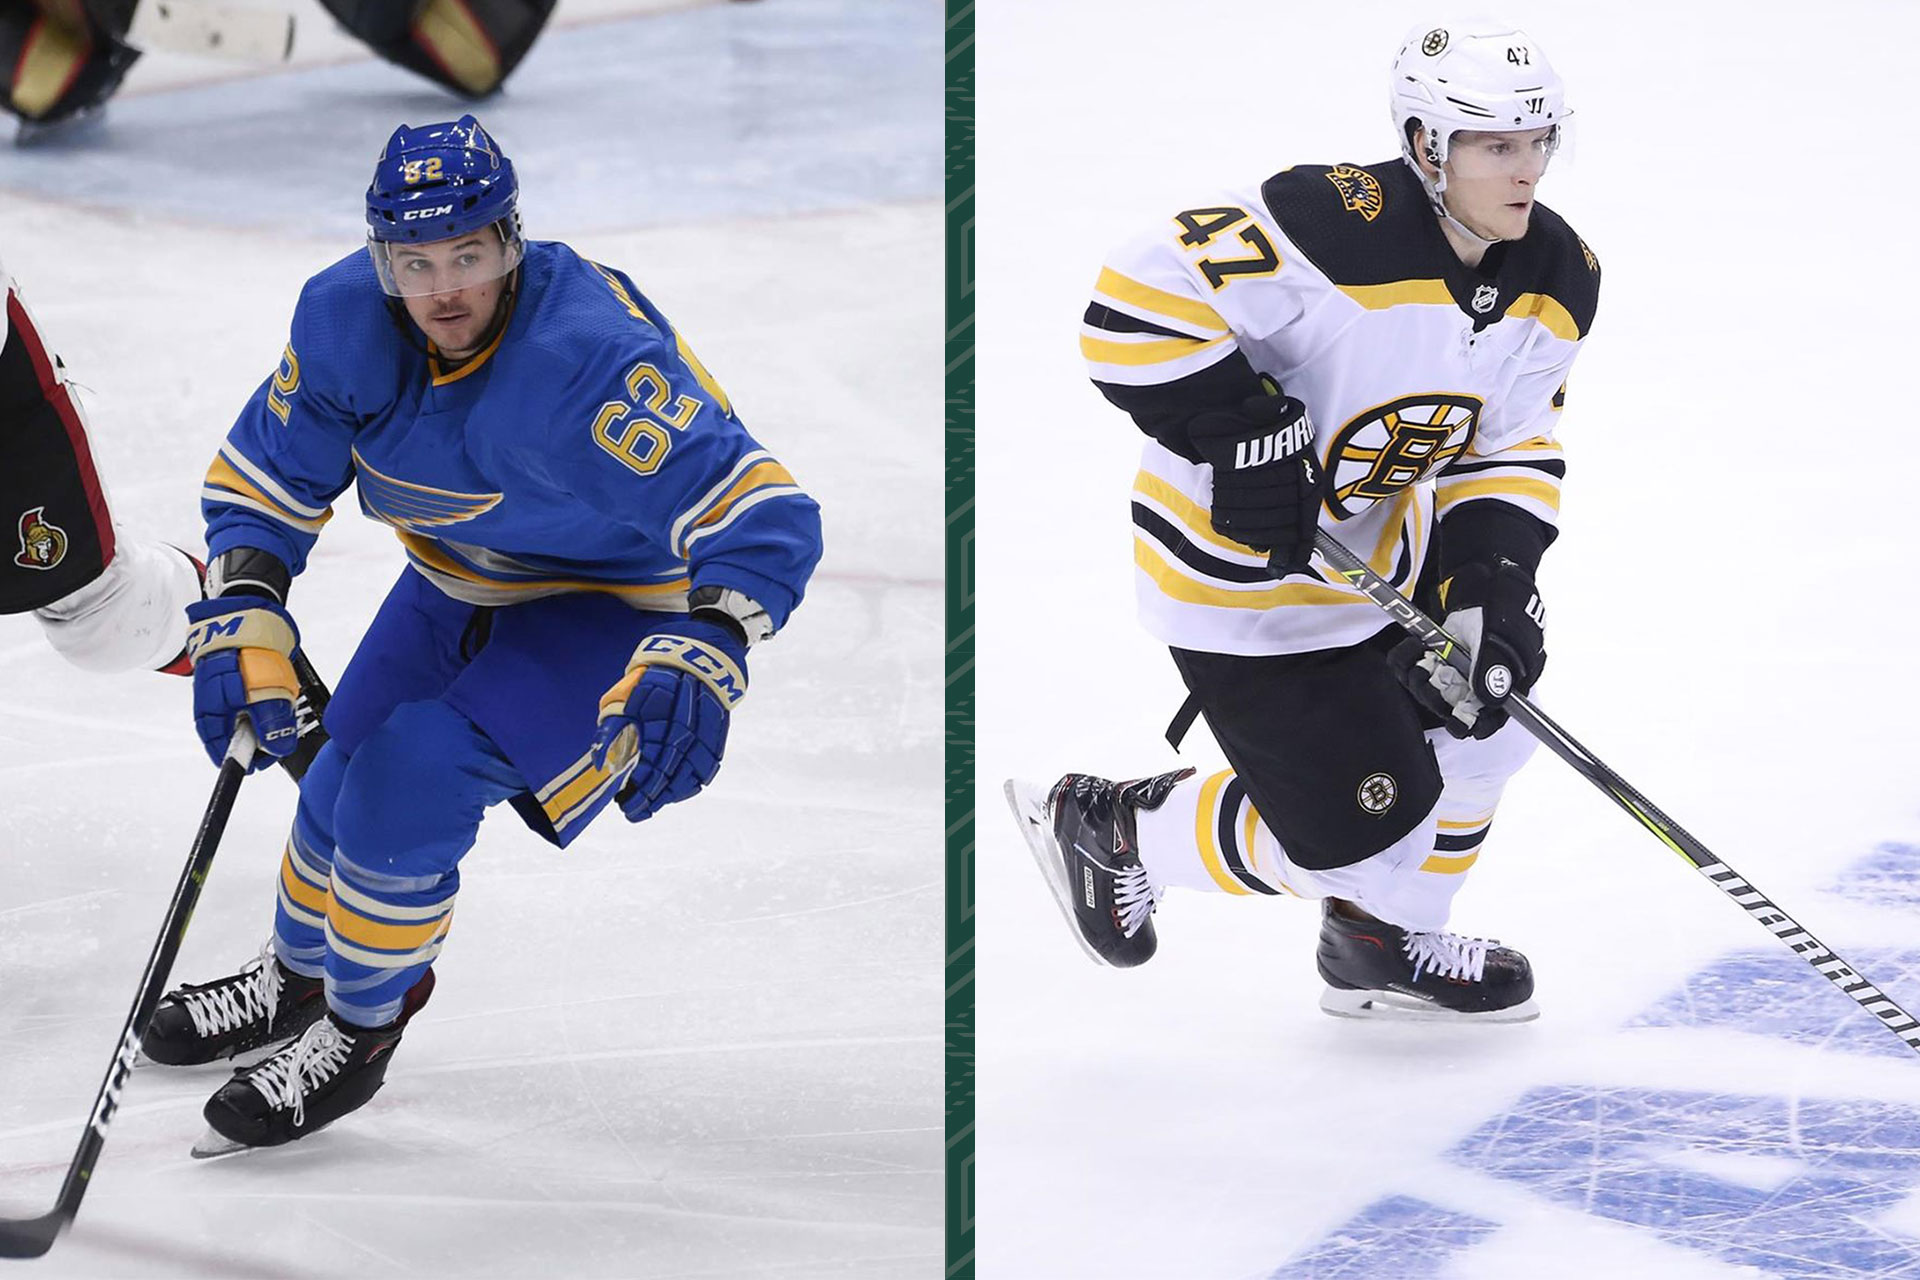 Krug And Maceachern Square Off For The Stanley Cup Michigan State